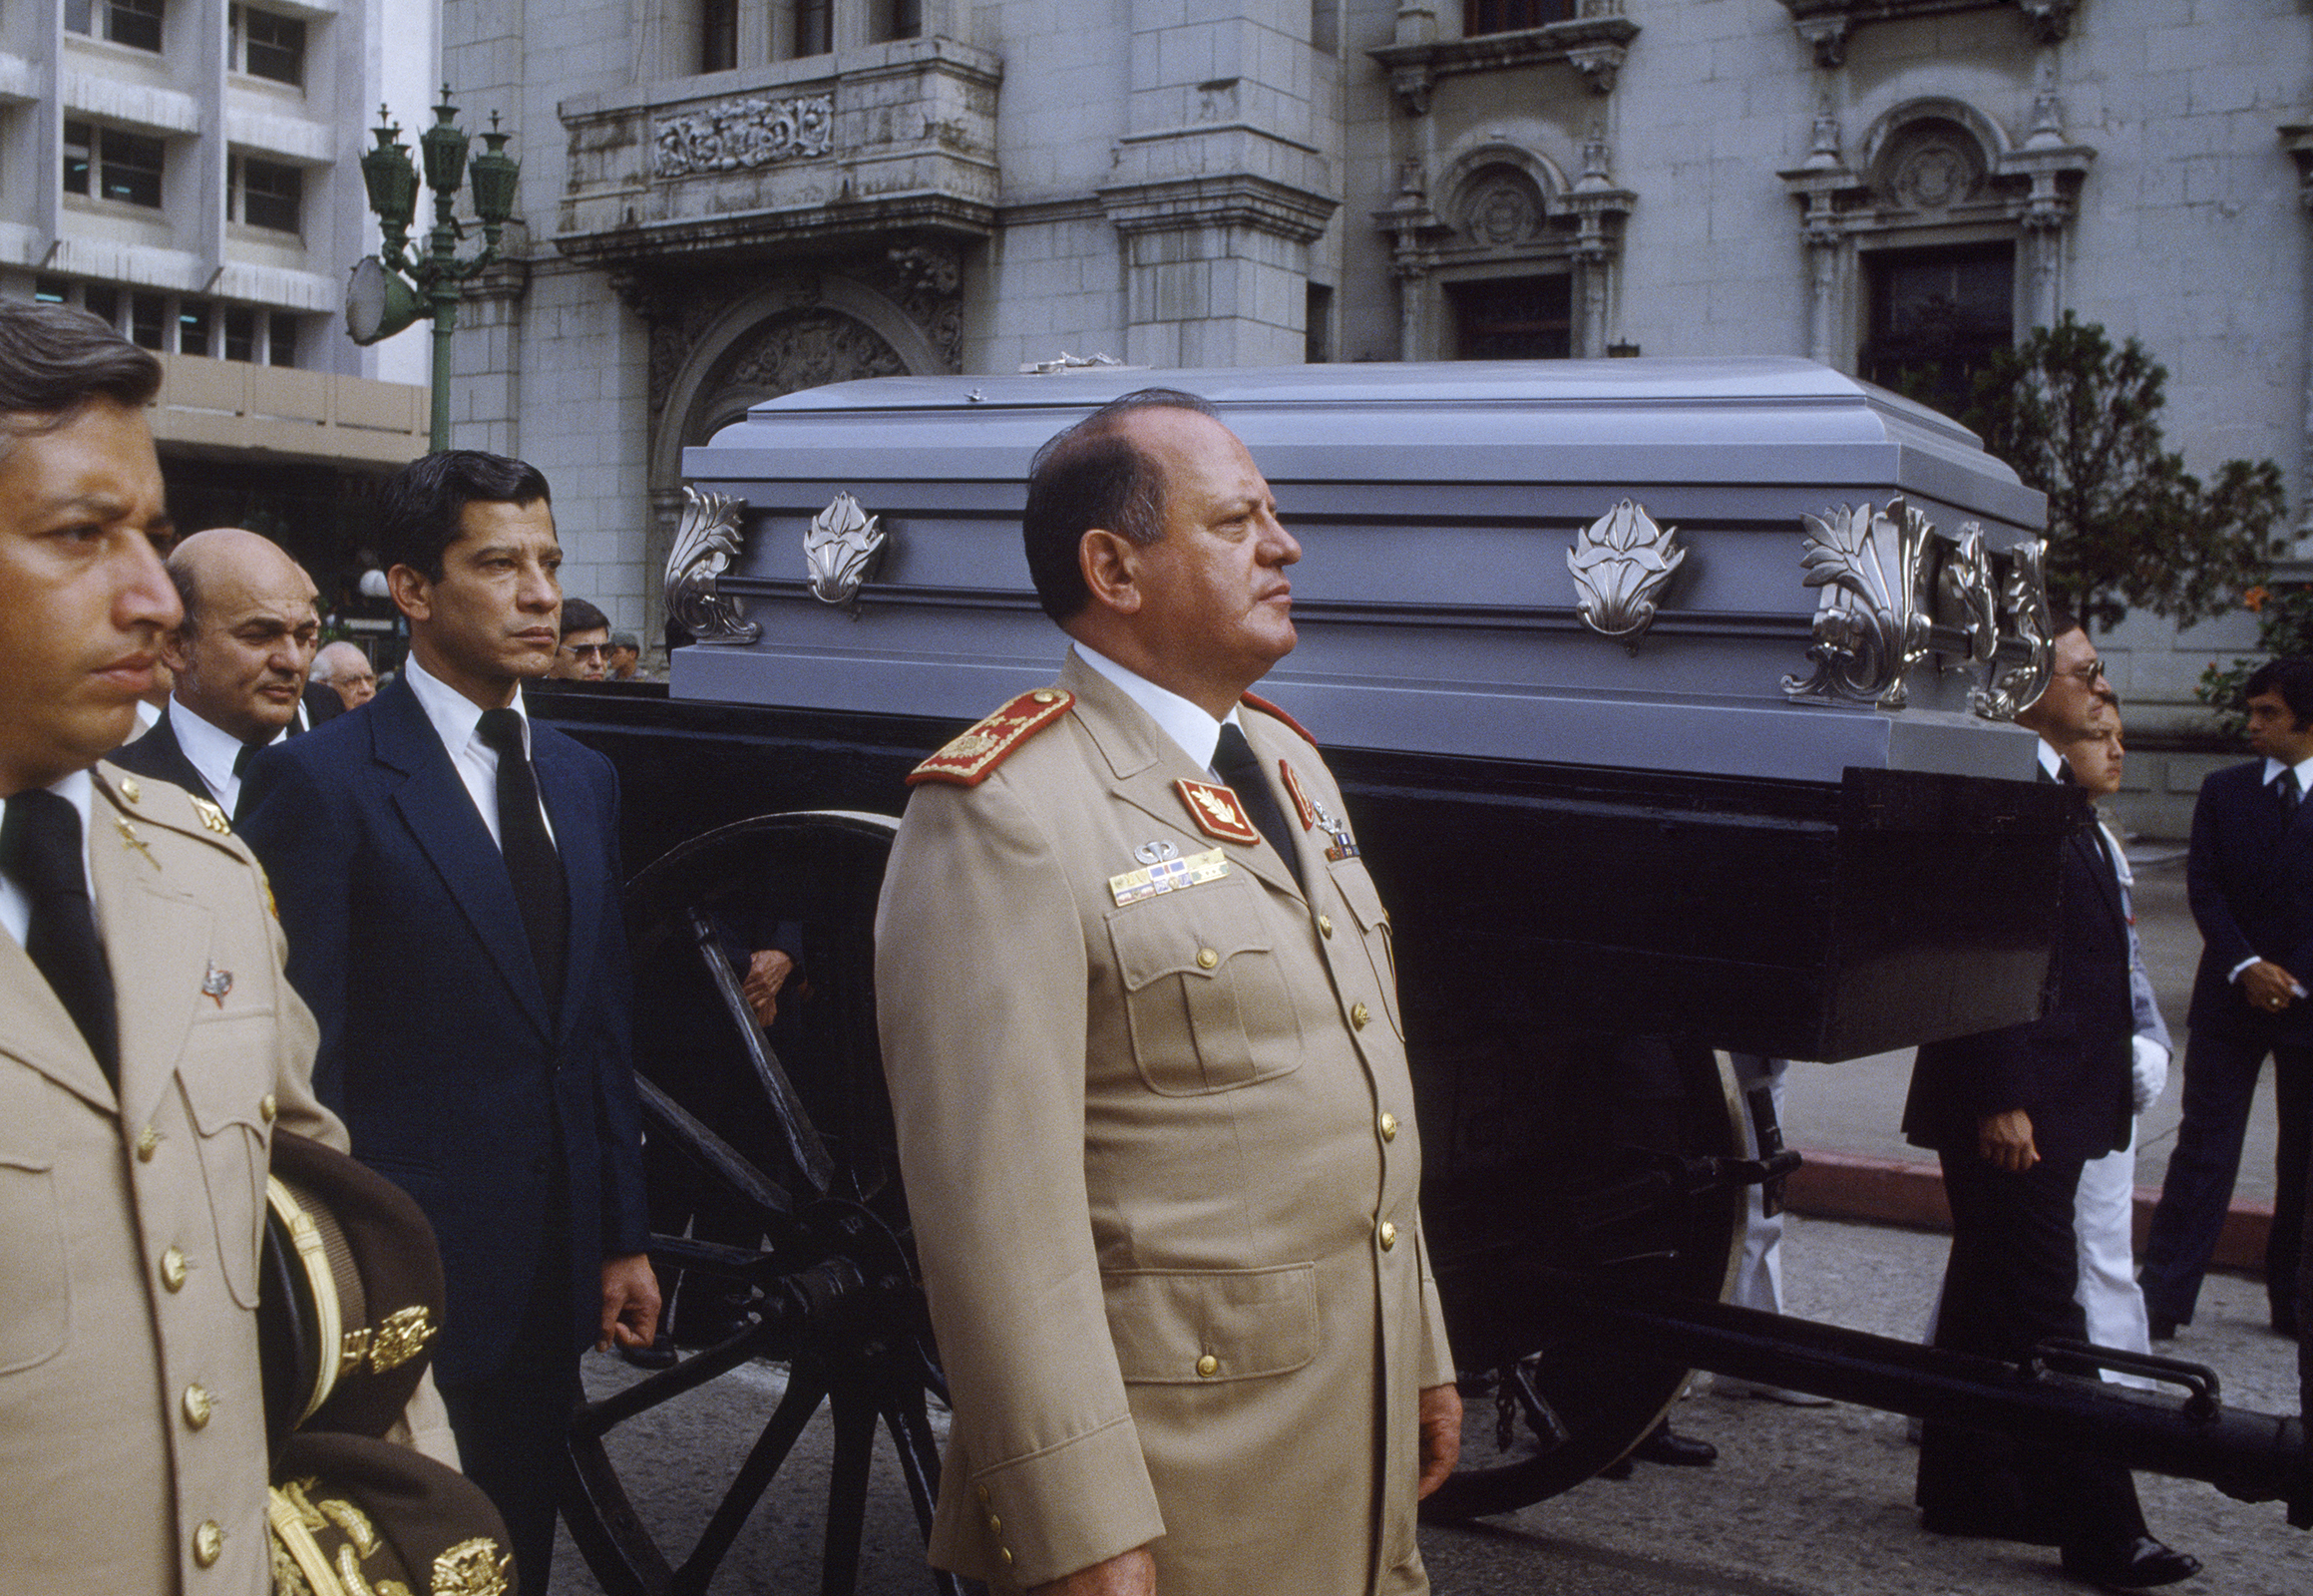 Guatemalan Defense Minister Brigadier General Óscar Mejía Víctores, 1930-2016, center, walks along the casket of Cardinal Casariego, Archbishop of Guatemala who died June 15, 1983 from a heart attack following the March 1983 visit of Pope John Paul ll to Guatemala. General Mejía Víctores deposed President and General Ríos Montt in a coup d'état on August 8, 1983. Mejía has since been indicted in both Spain and Guatemala on charges of genocide, as well as torture and crimes against humanity, for his rule as president in the internal armed conflict.